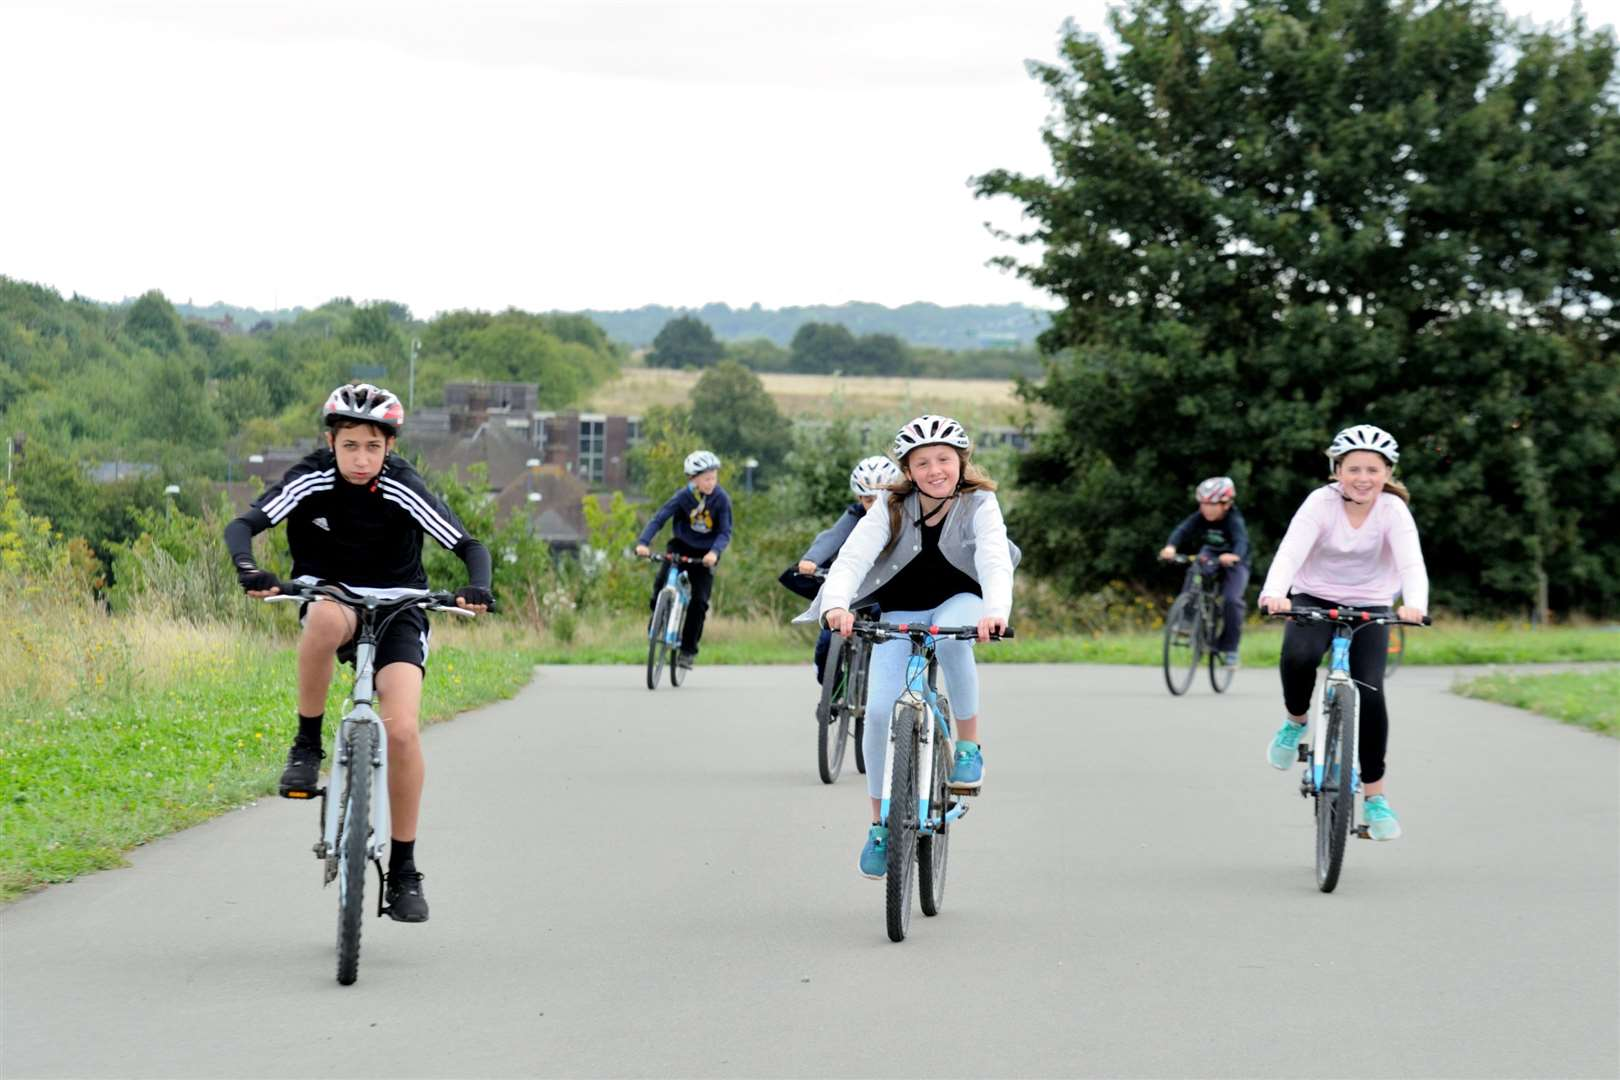 Cyclopark's Family Open Day is taking place on September 28